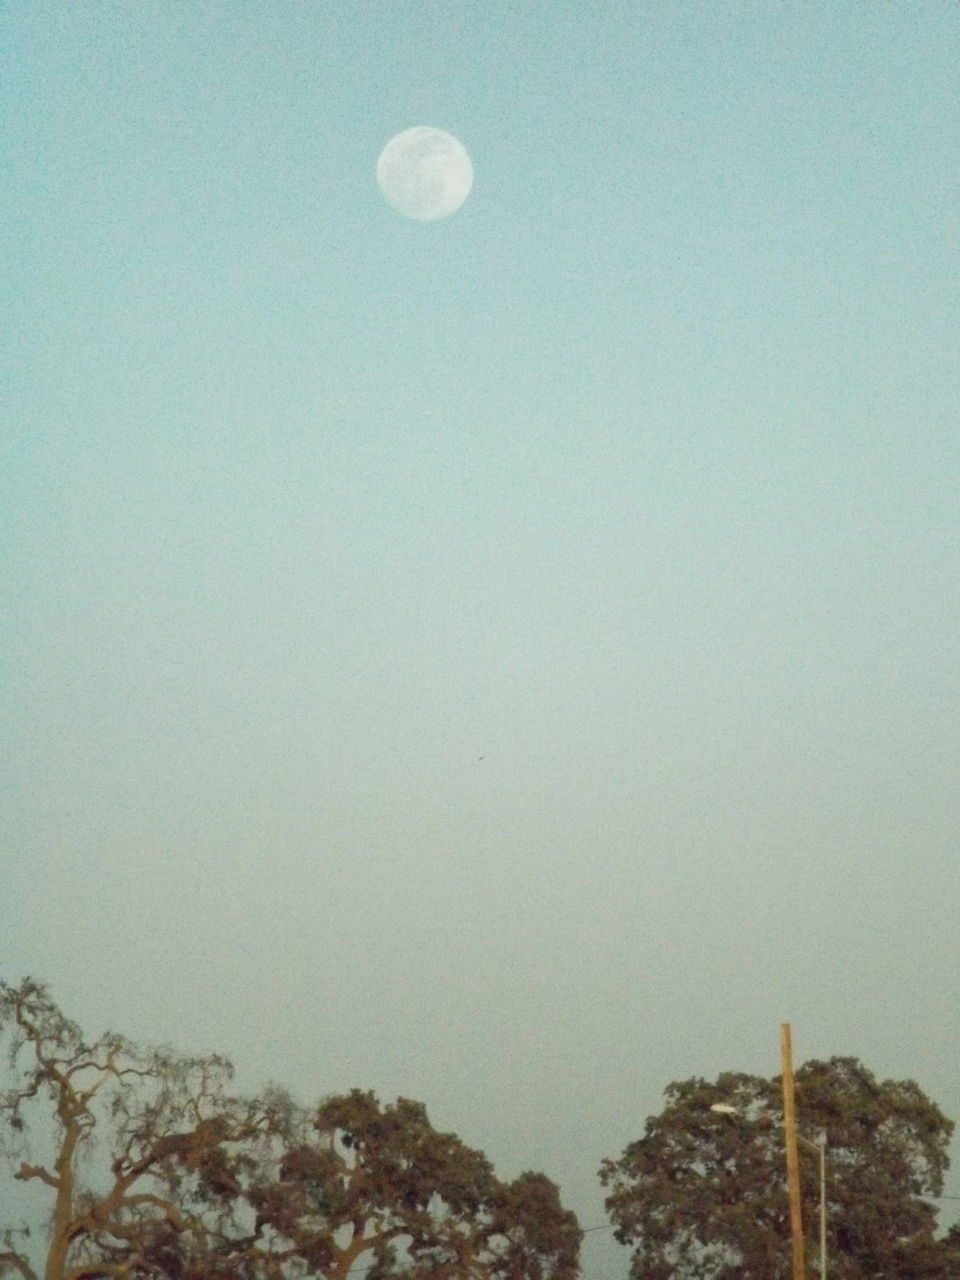 moon, nature, clear sky, no people, sky, outdoors, beauty in nature, architecture, crescent, tree, day, astronomy